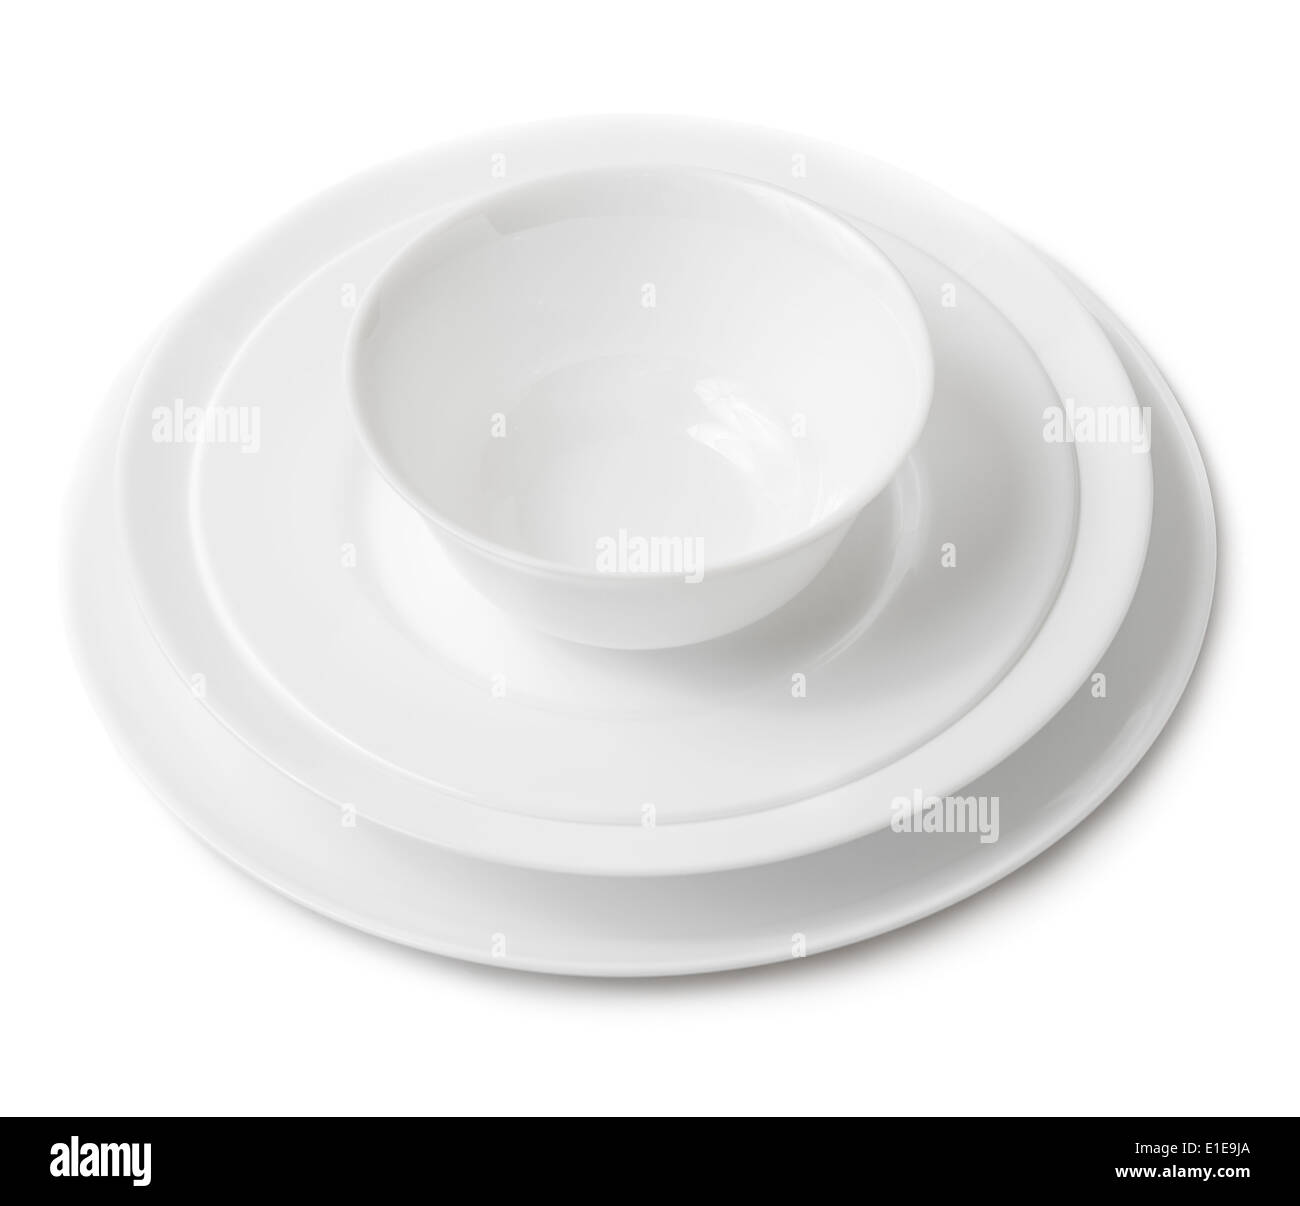 Pile of clean white plates and bowl. Isolated on white background. - Stock Image